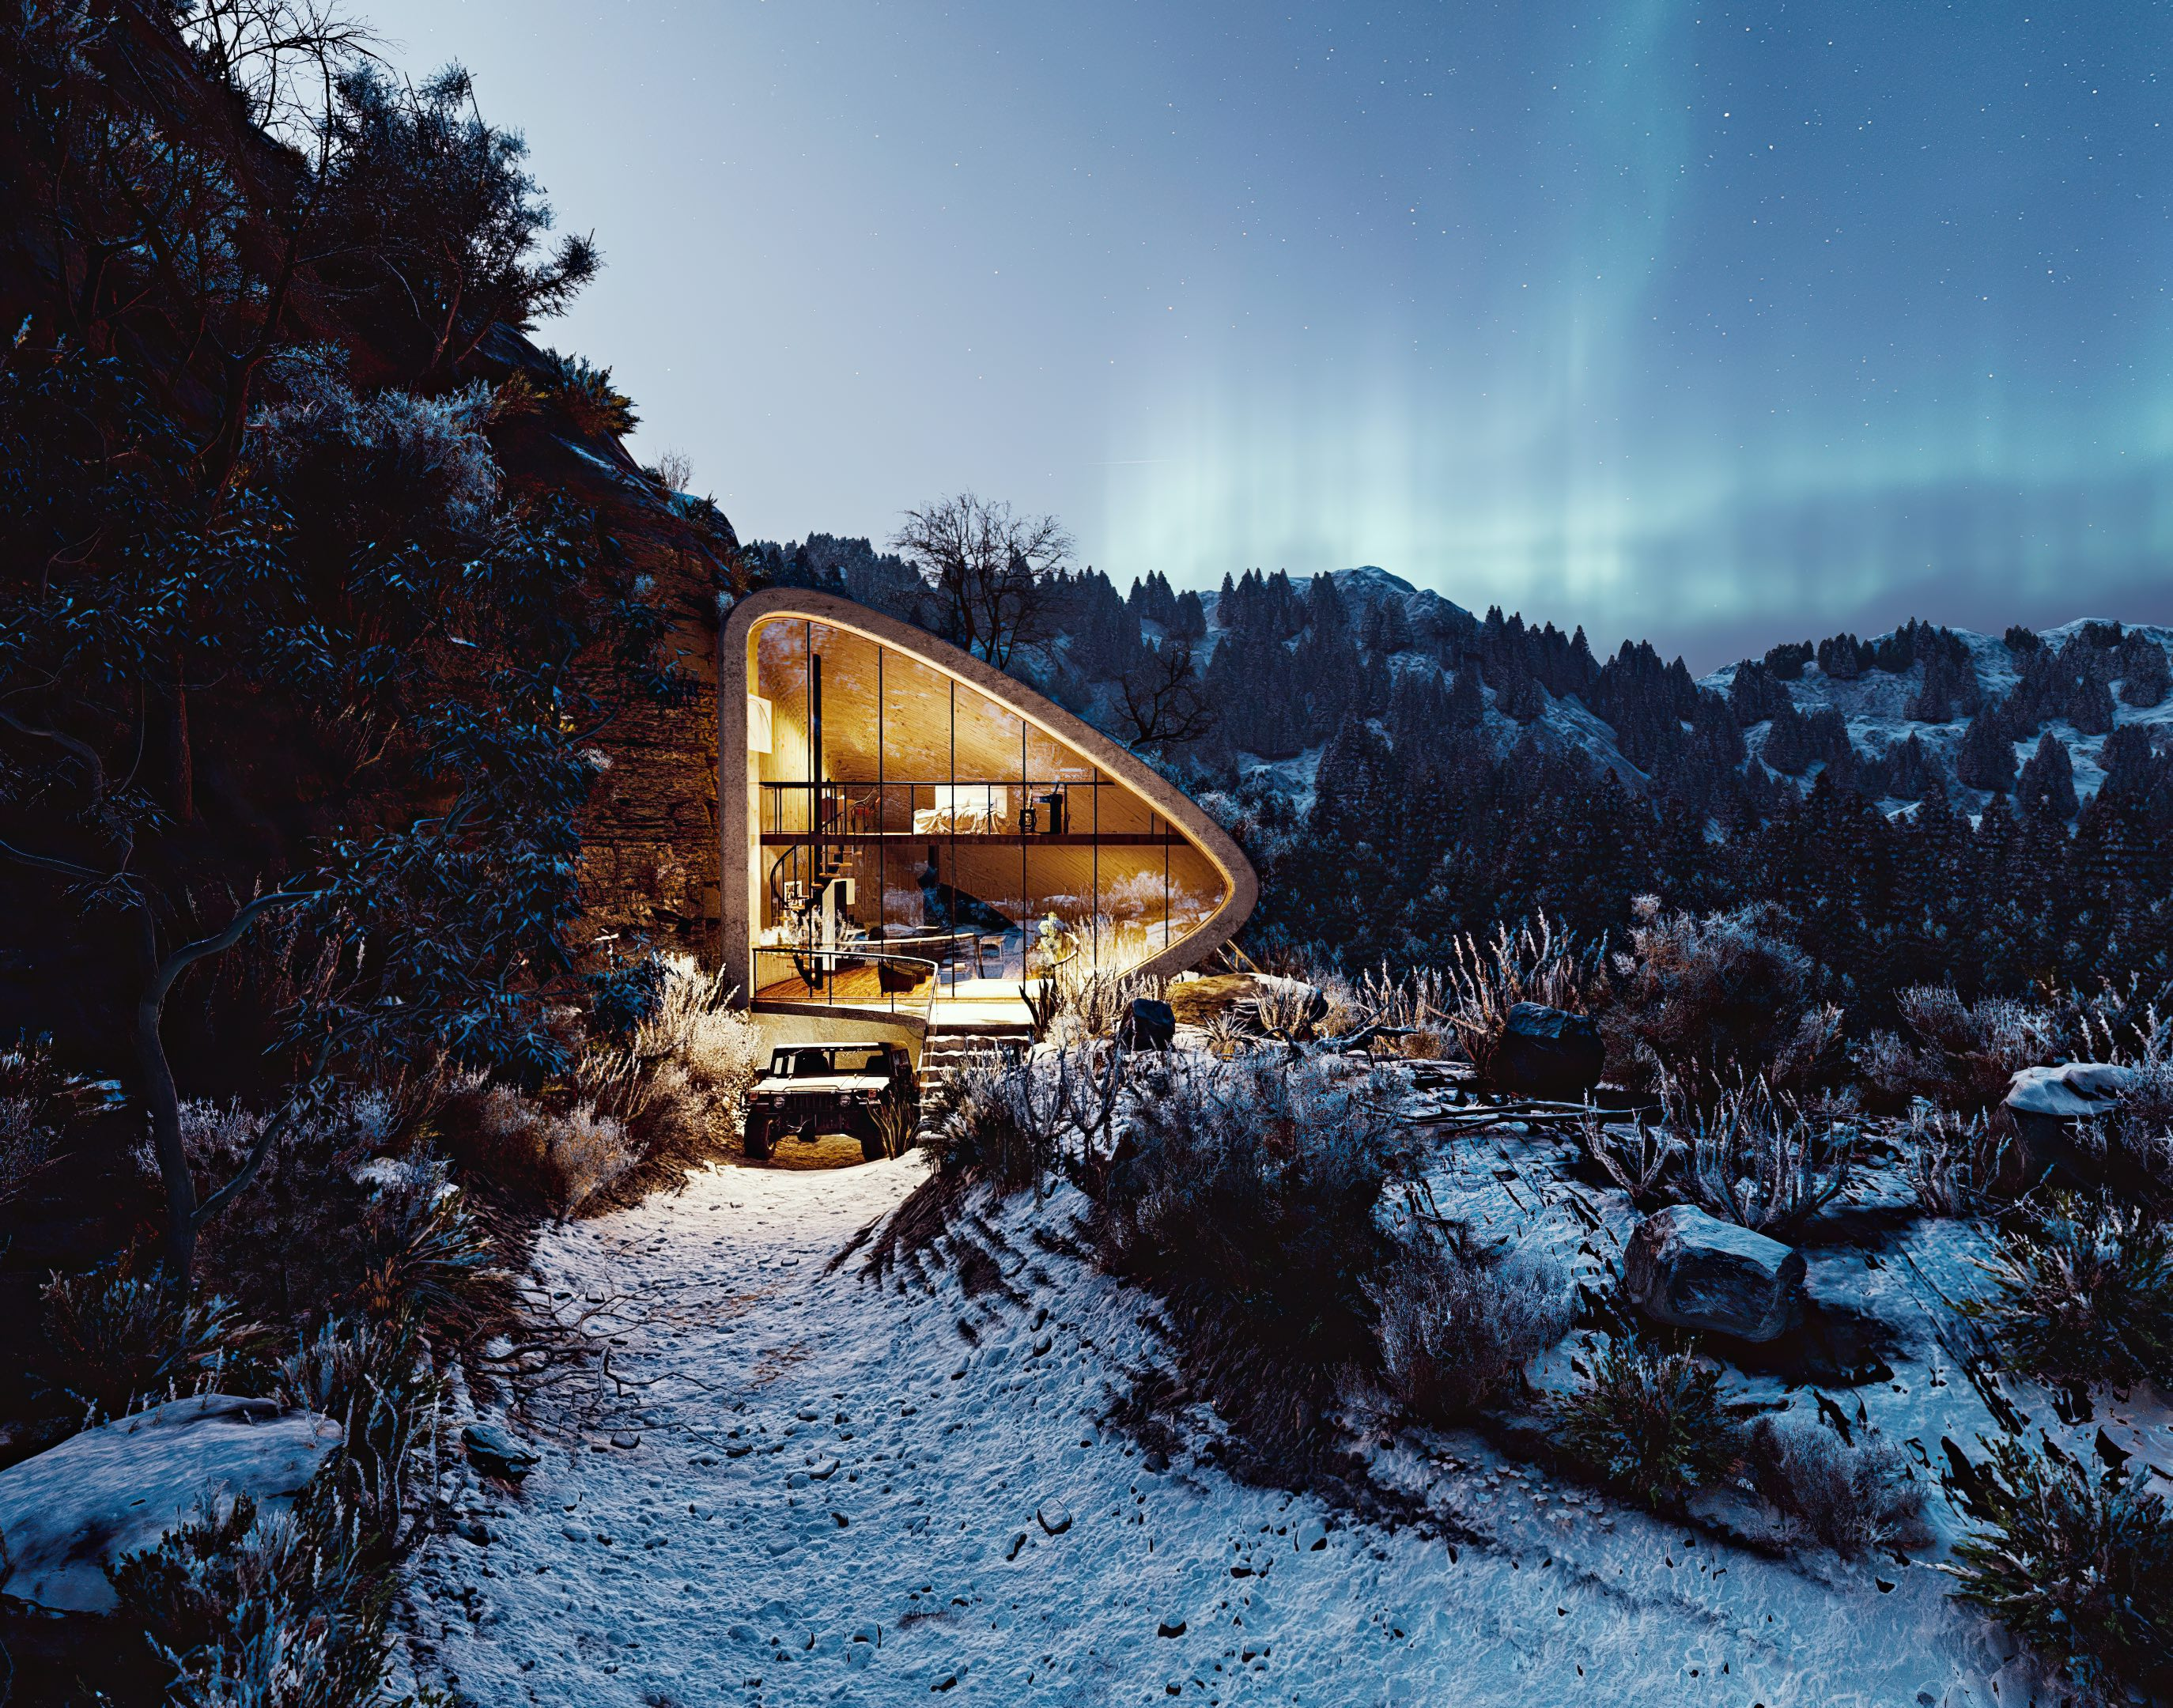 concrete house surrounded with snow at night